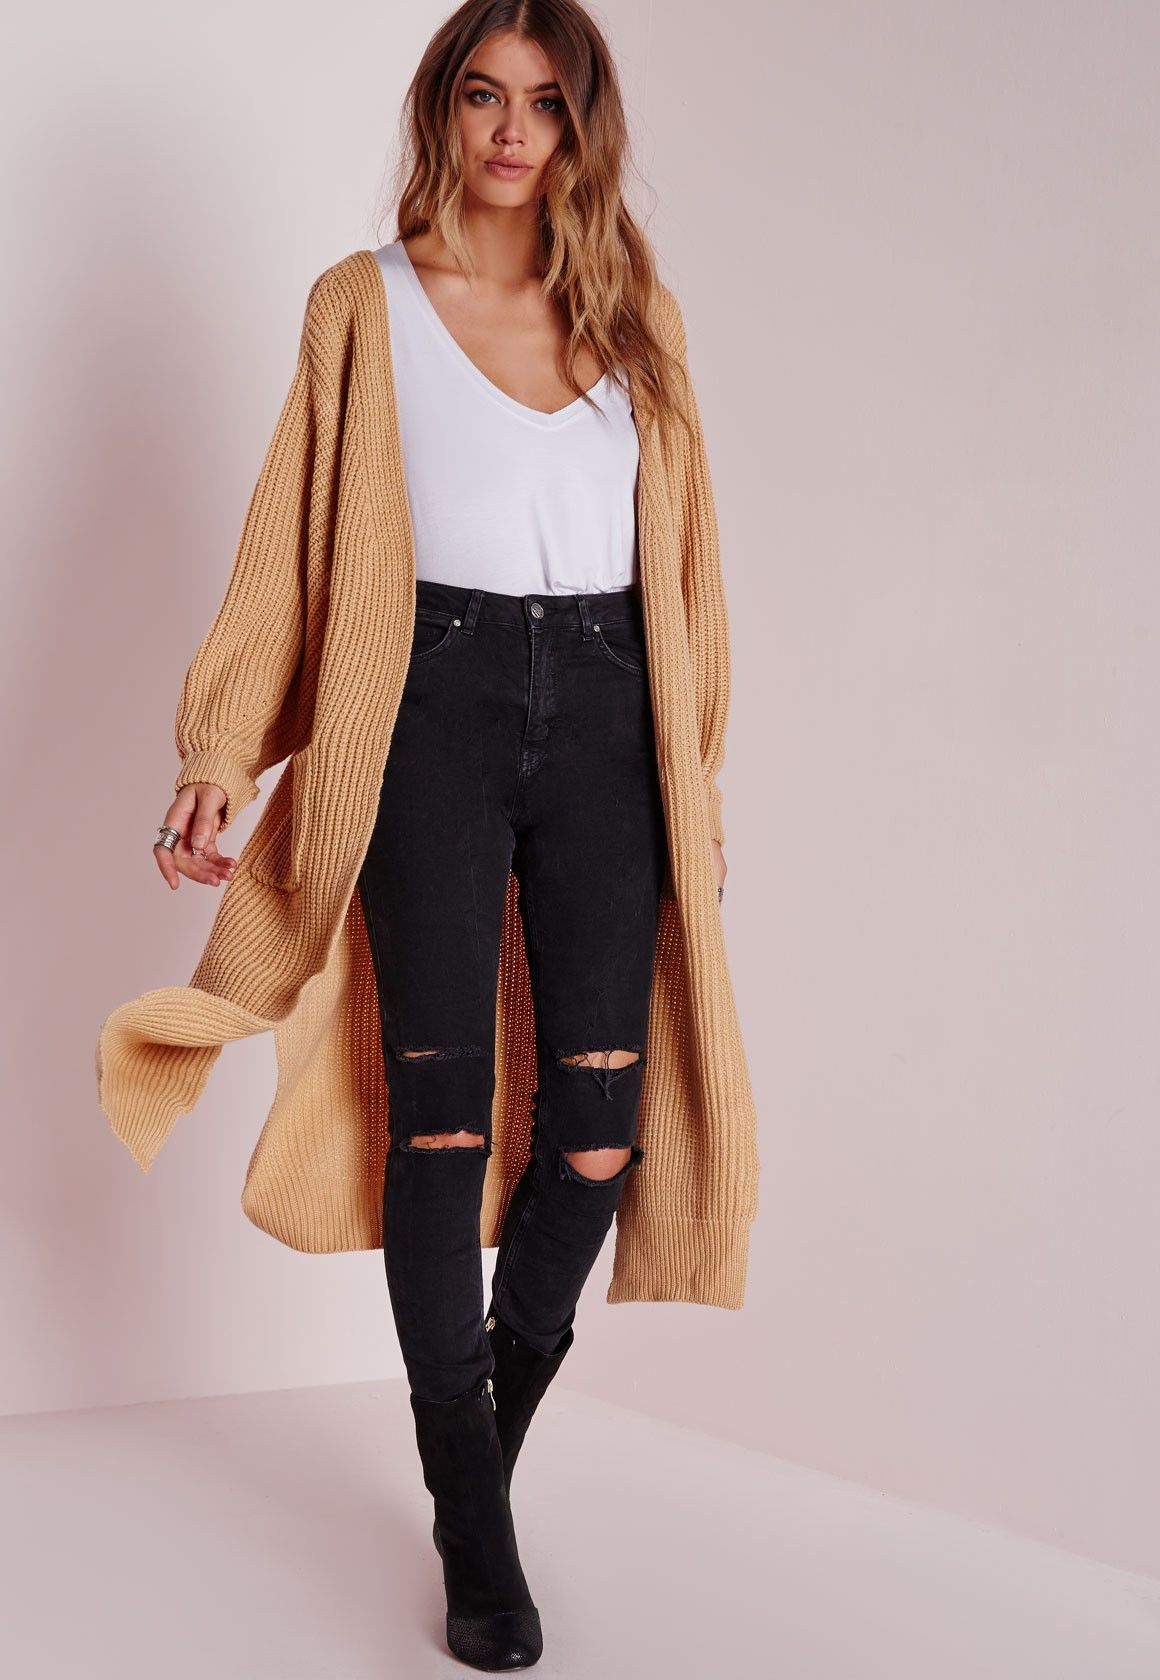 Missguided - Oversized Cardigan Camel | Pash 4 the Fash ...